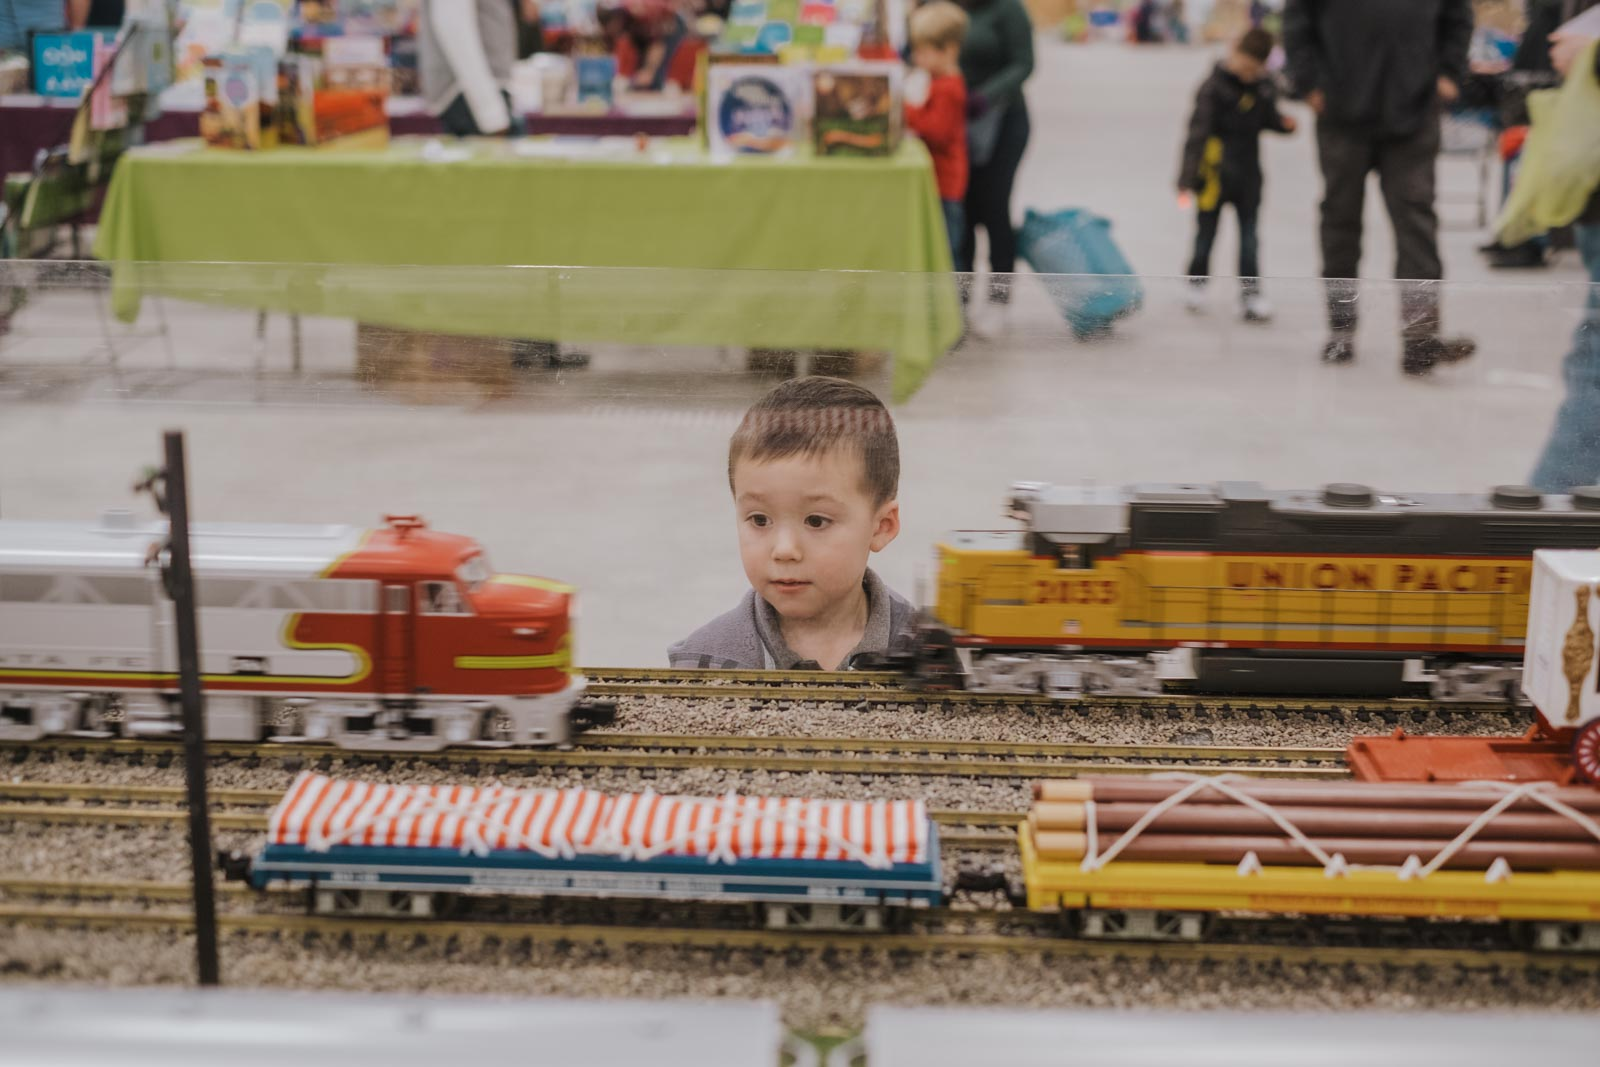 A small on looker enjoys the passing trains.